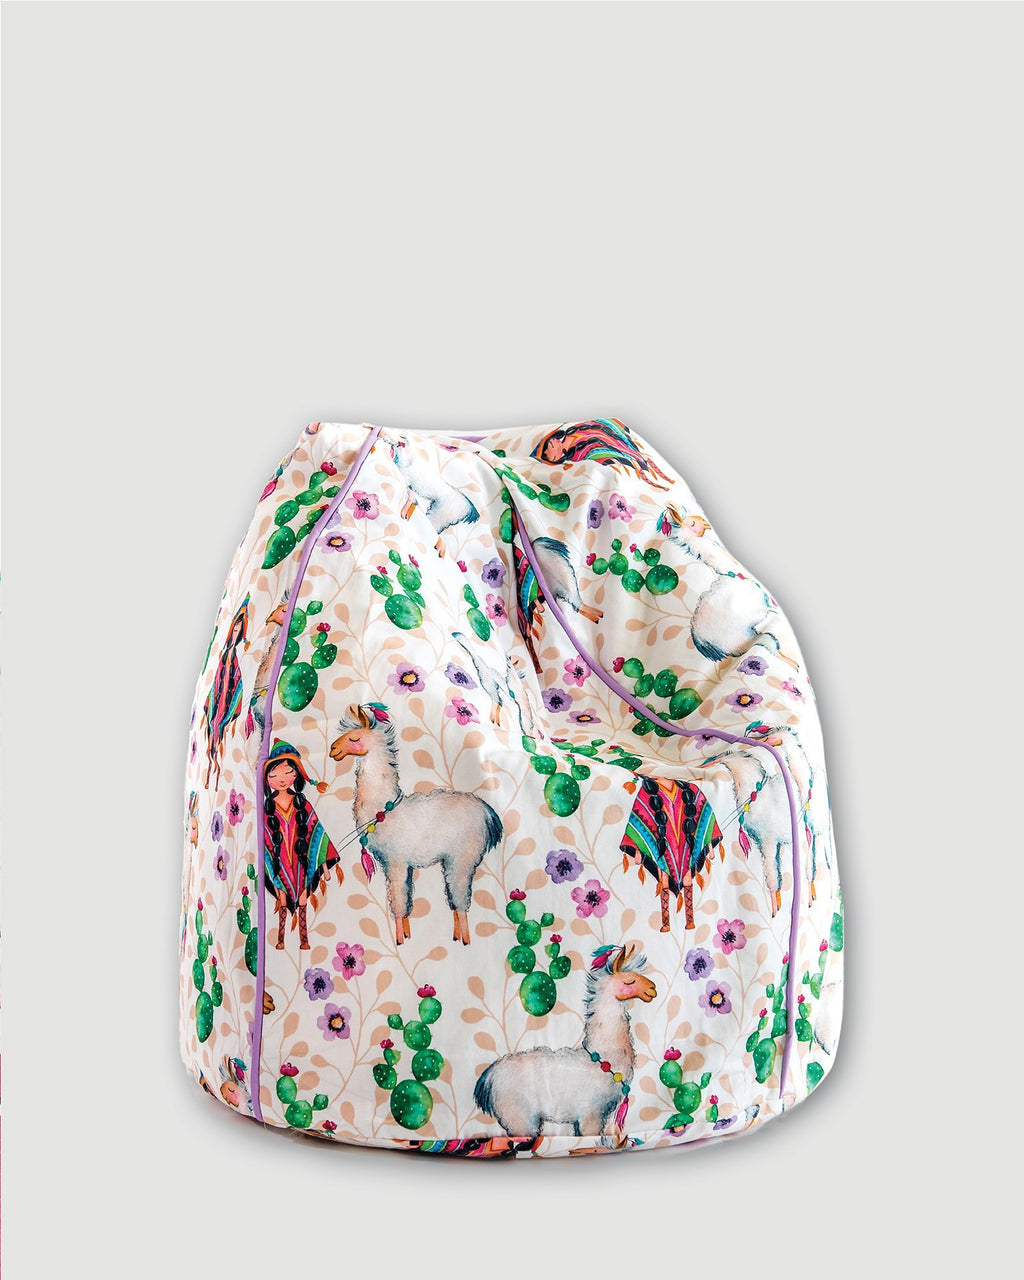 Bean Bag Cover - Peruvian Friends - Small